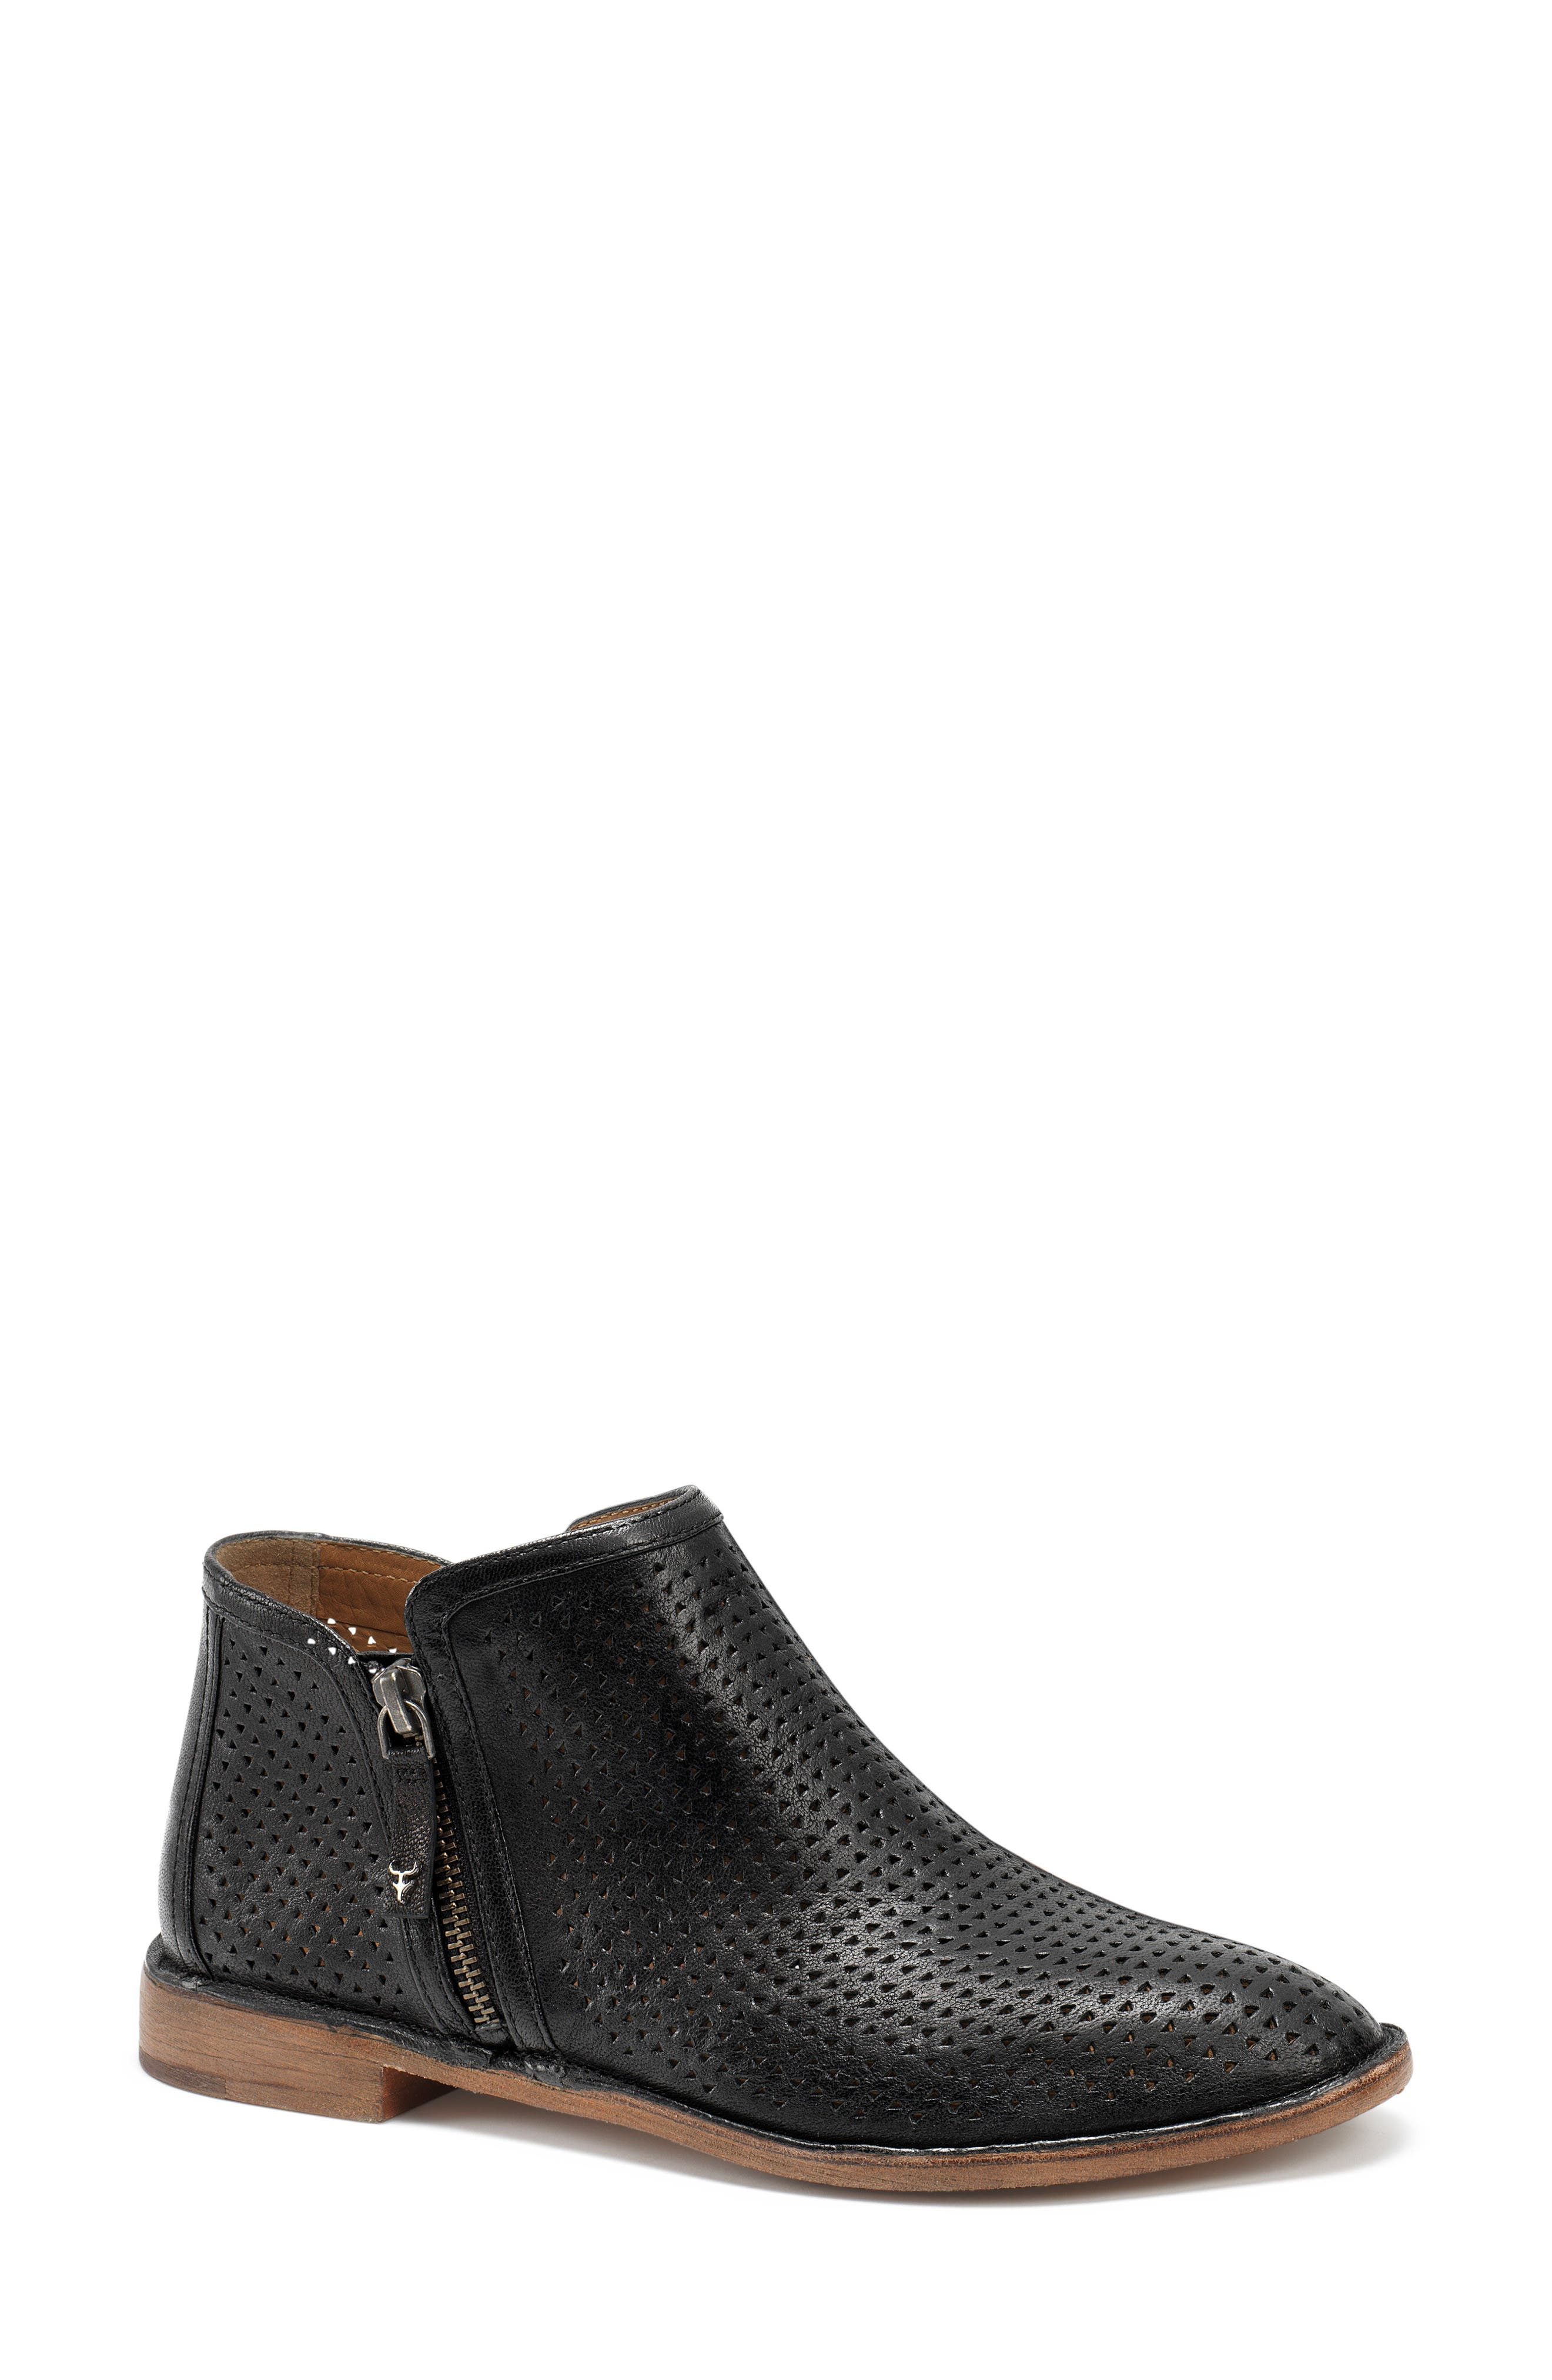 TRASK Addison Low Perforated Bootie, Main, color, 001